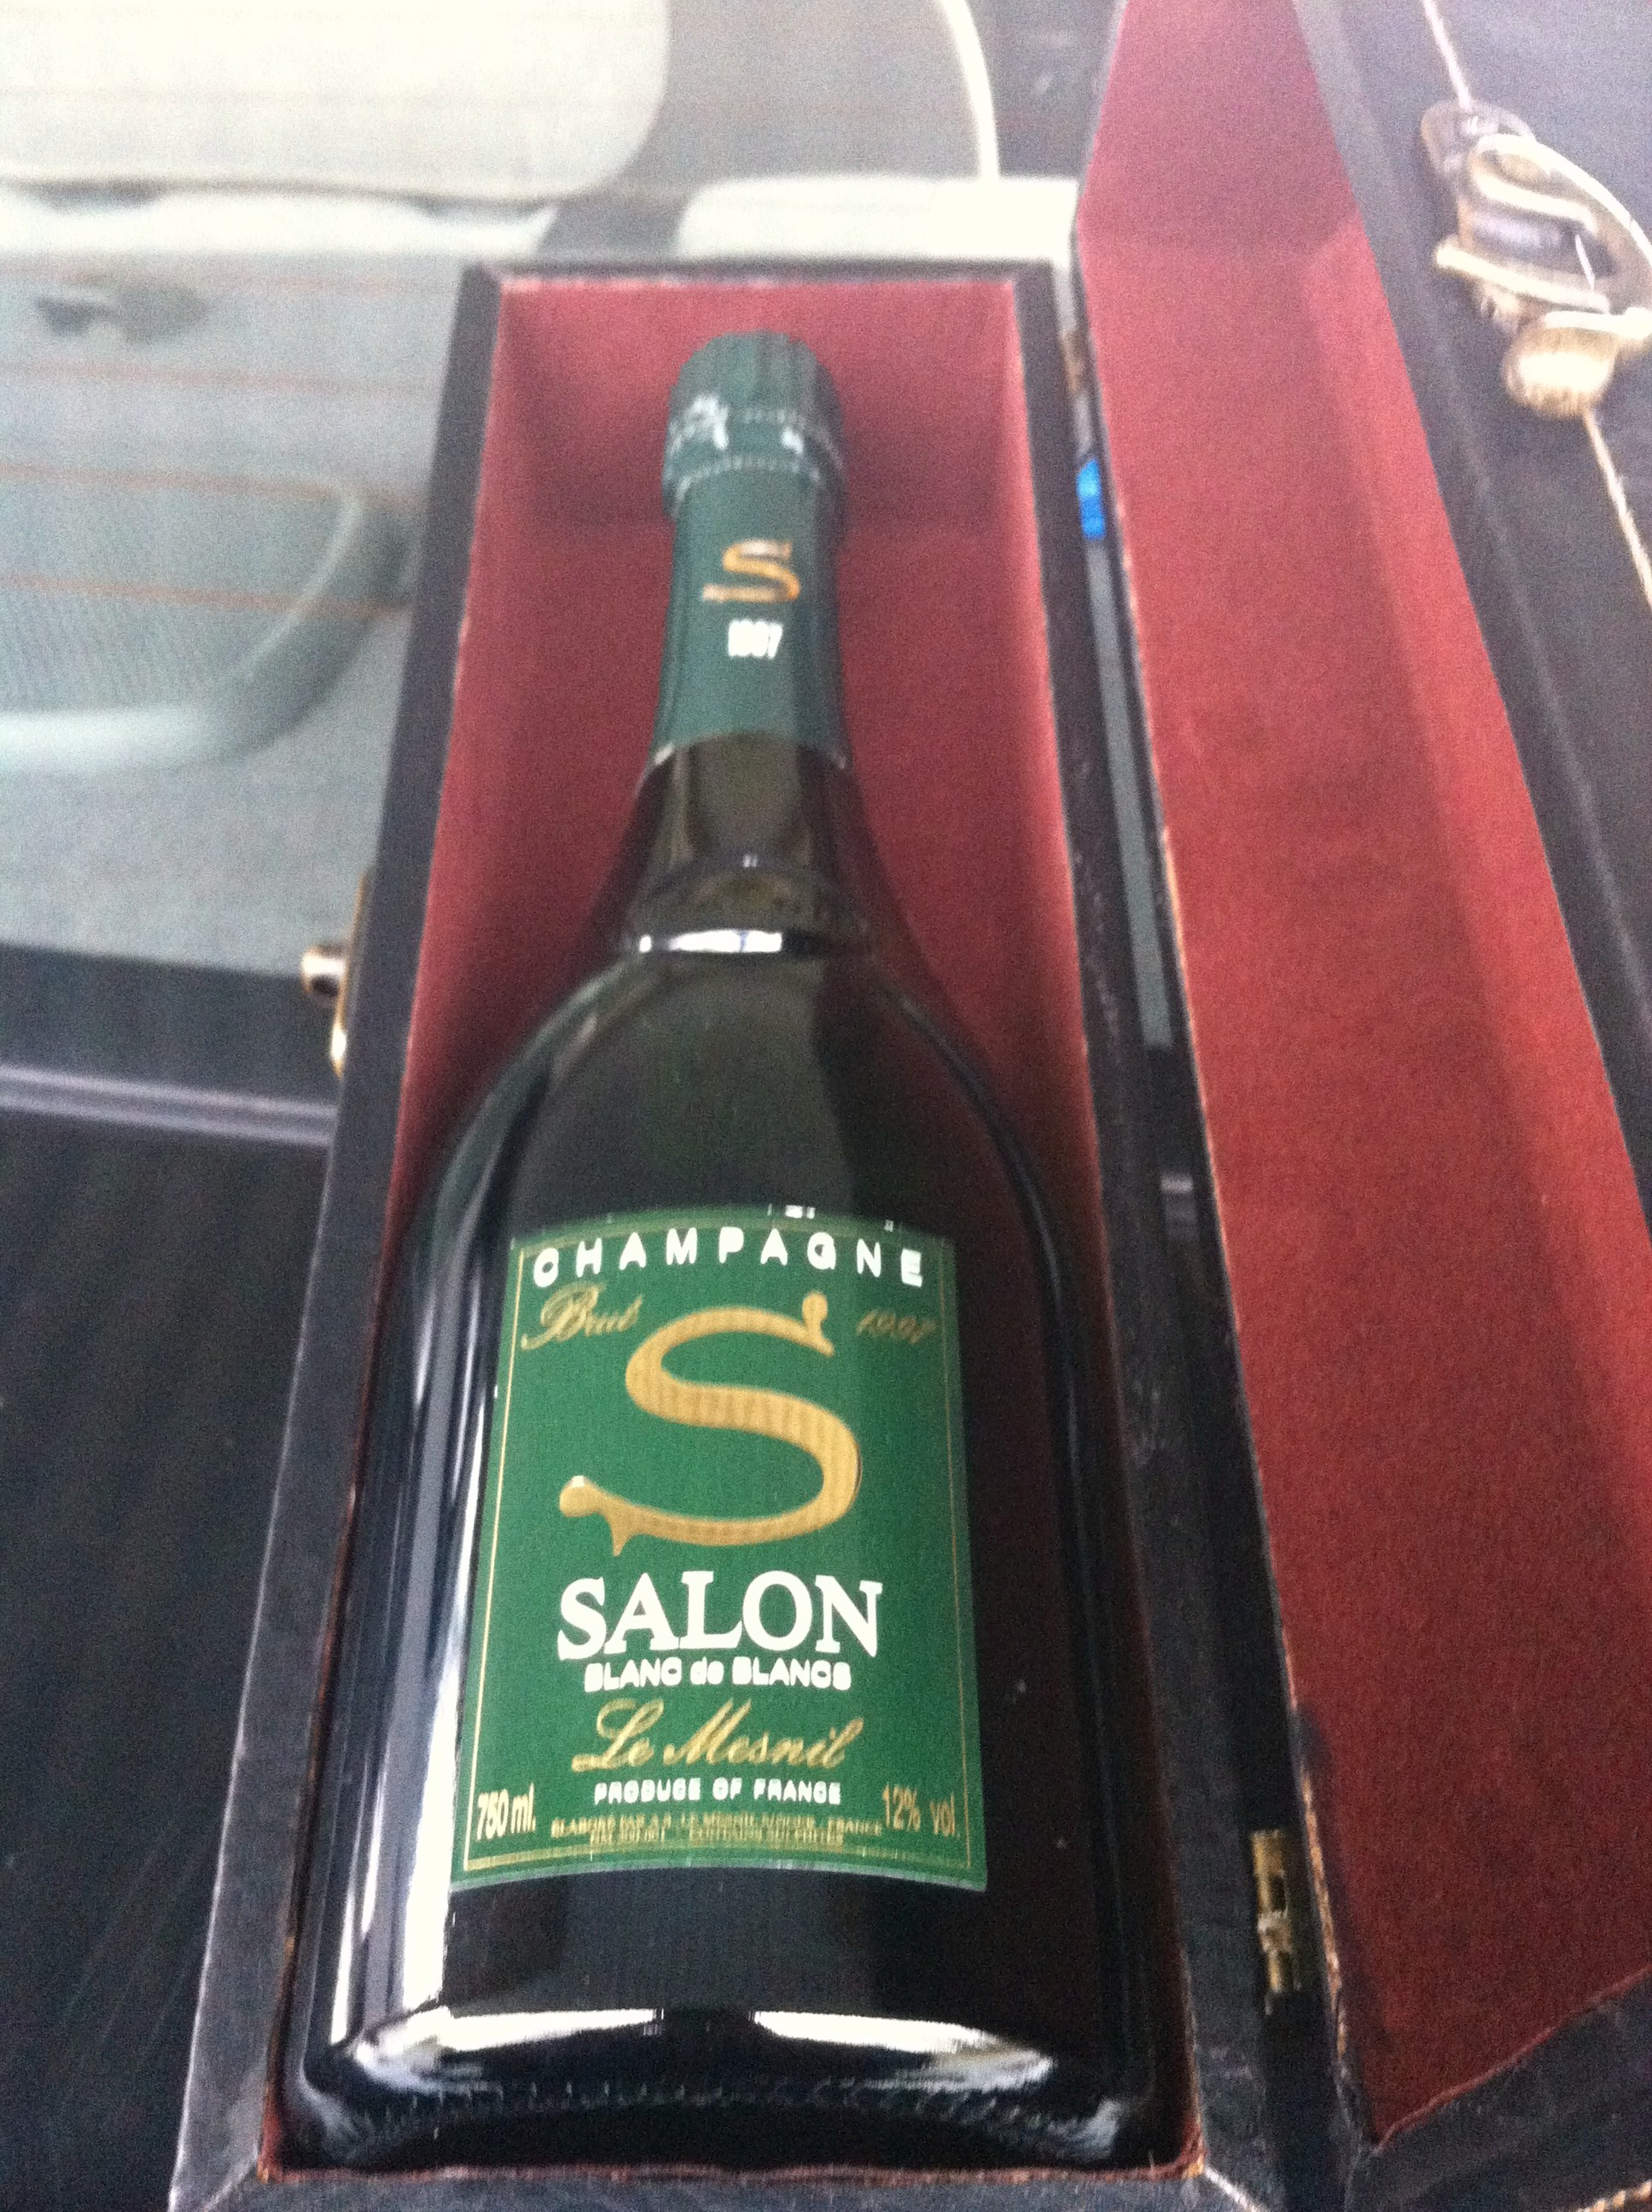 Champagne Salon File Champagne Salon Jpg Wikimedia Commons